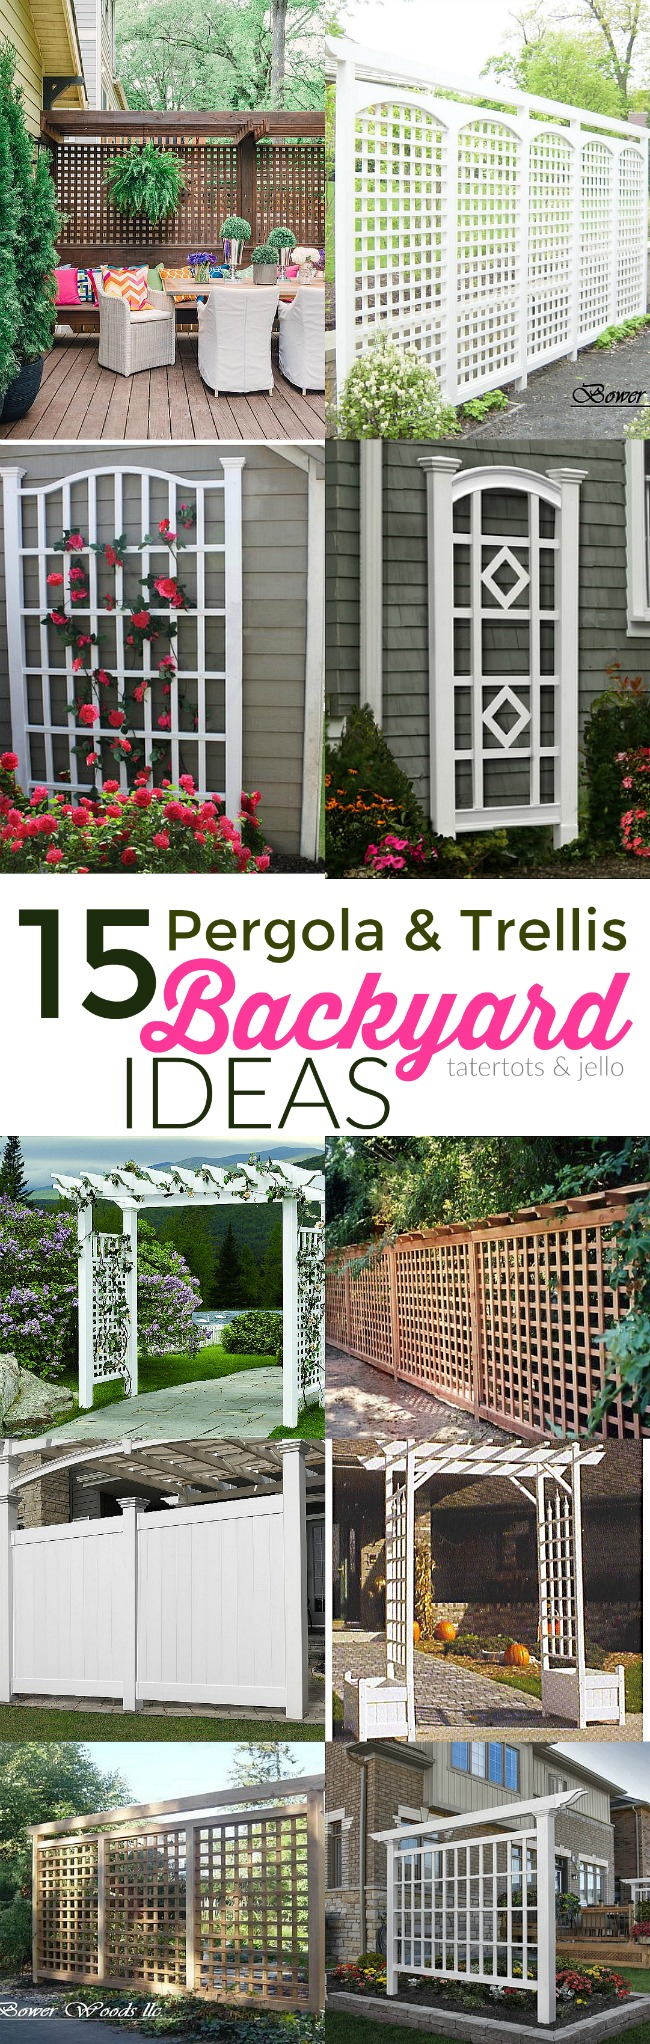 Trellis ideas for privacy - Trellis Ideas For Privacy 19